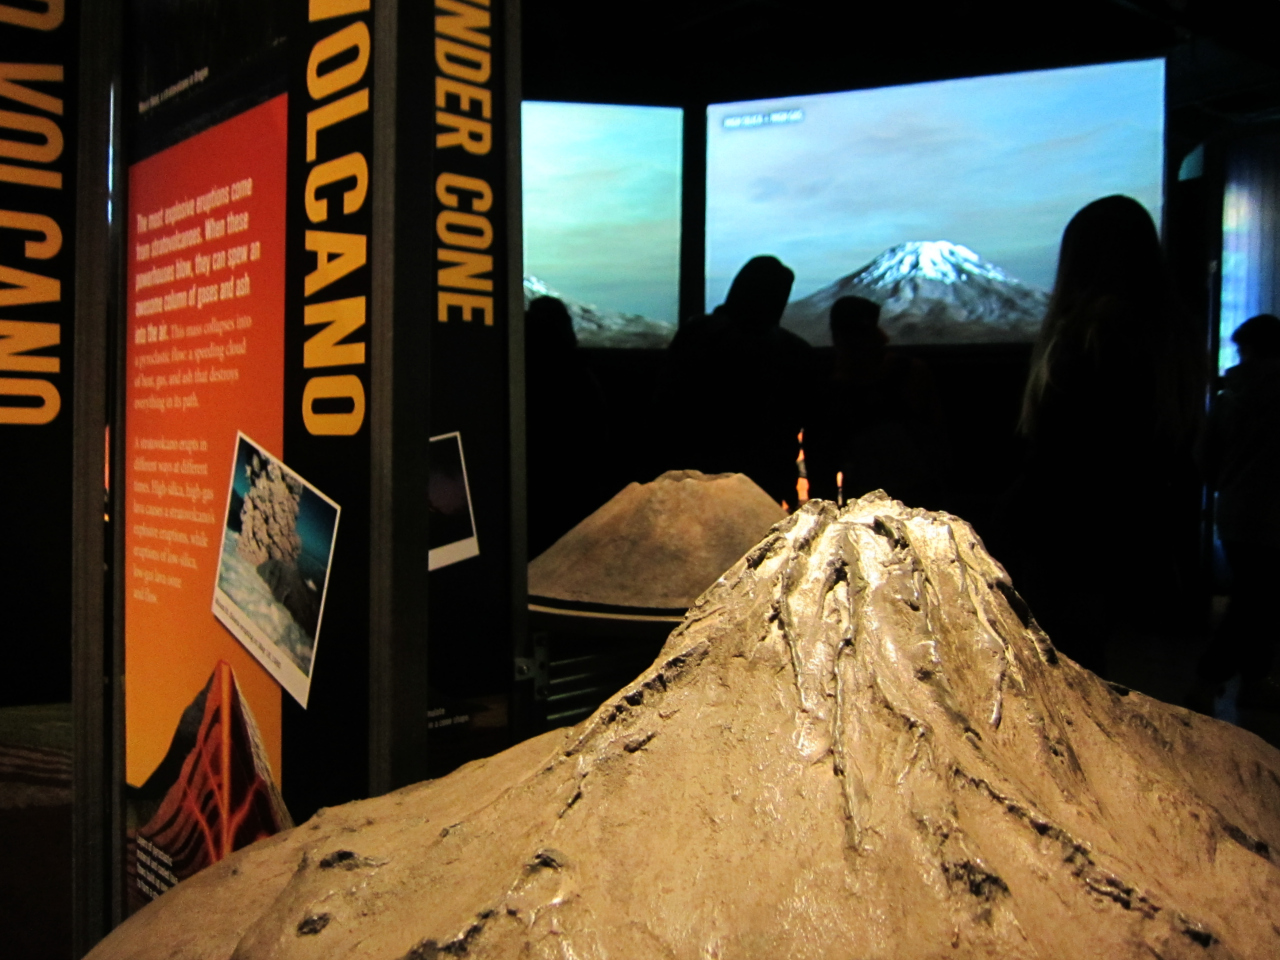 'Nature's Fury: The Science of Natural Disasters' at the American Museum of Natural History